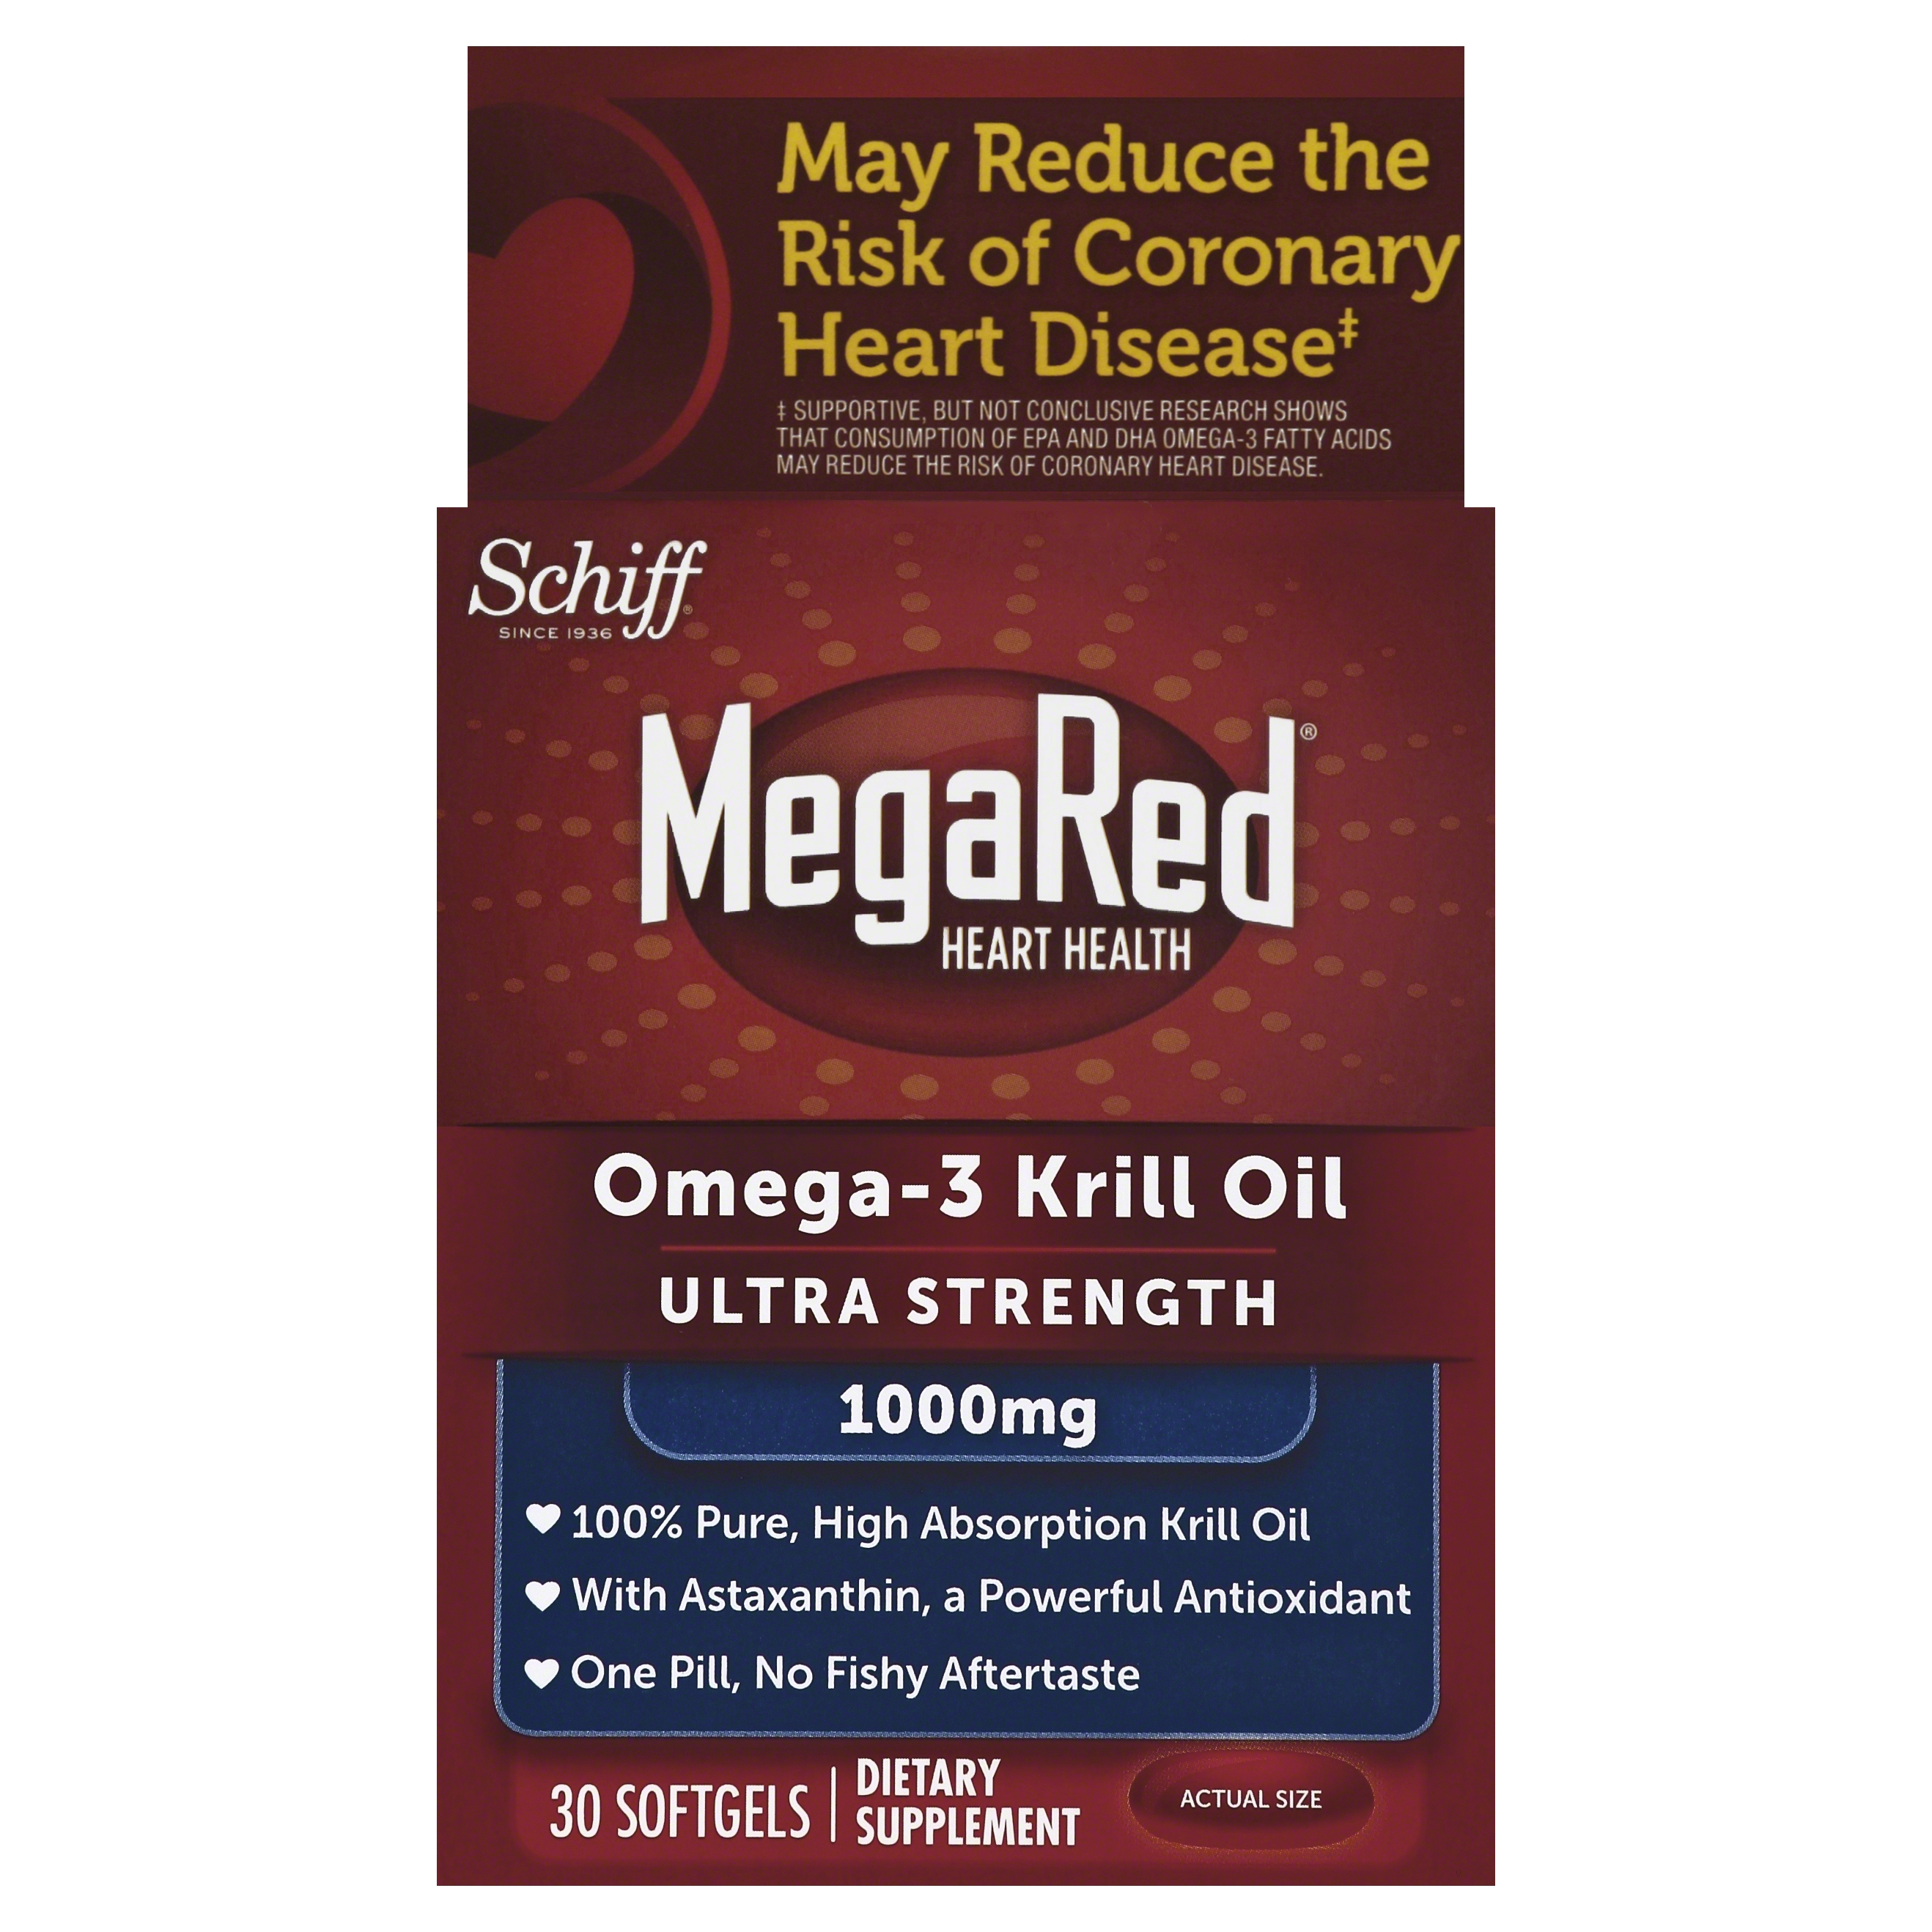 MegaRed Ultra Strength Omega 3 Krill Oil 1000mg Supplement, 30 Count